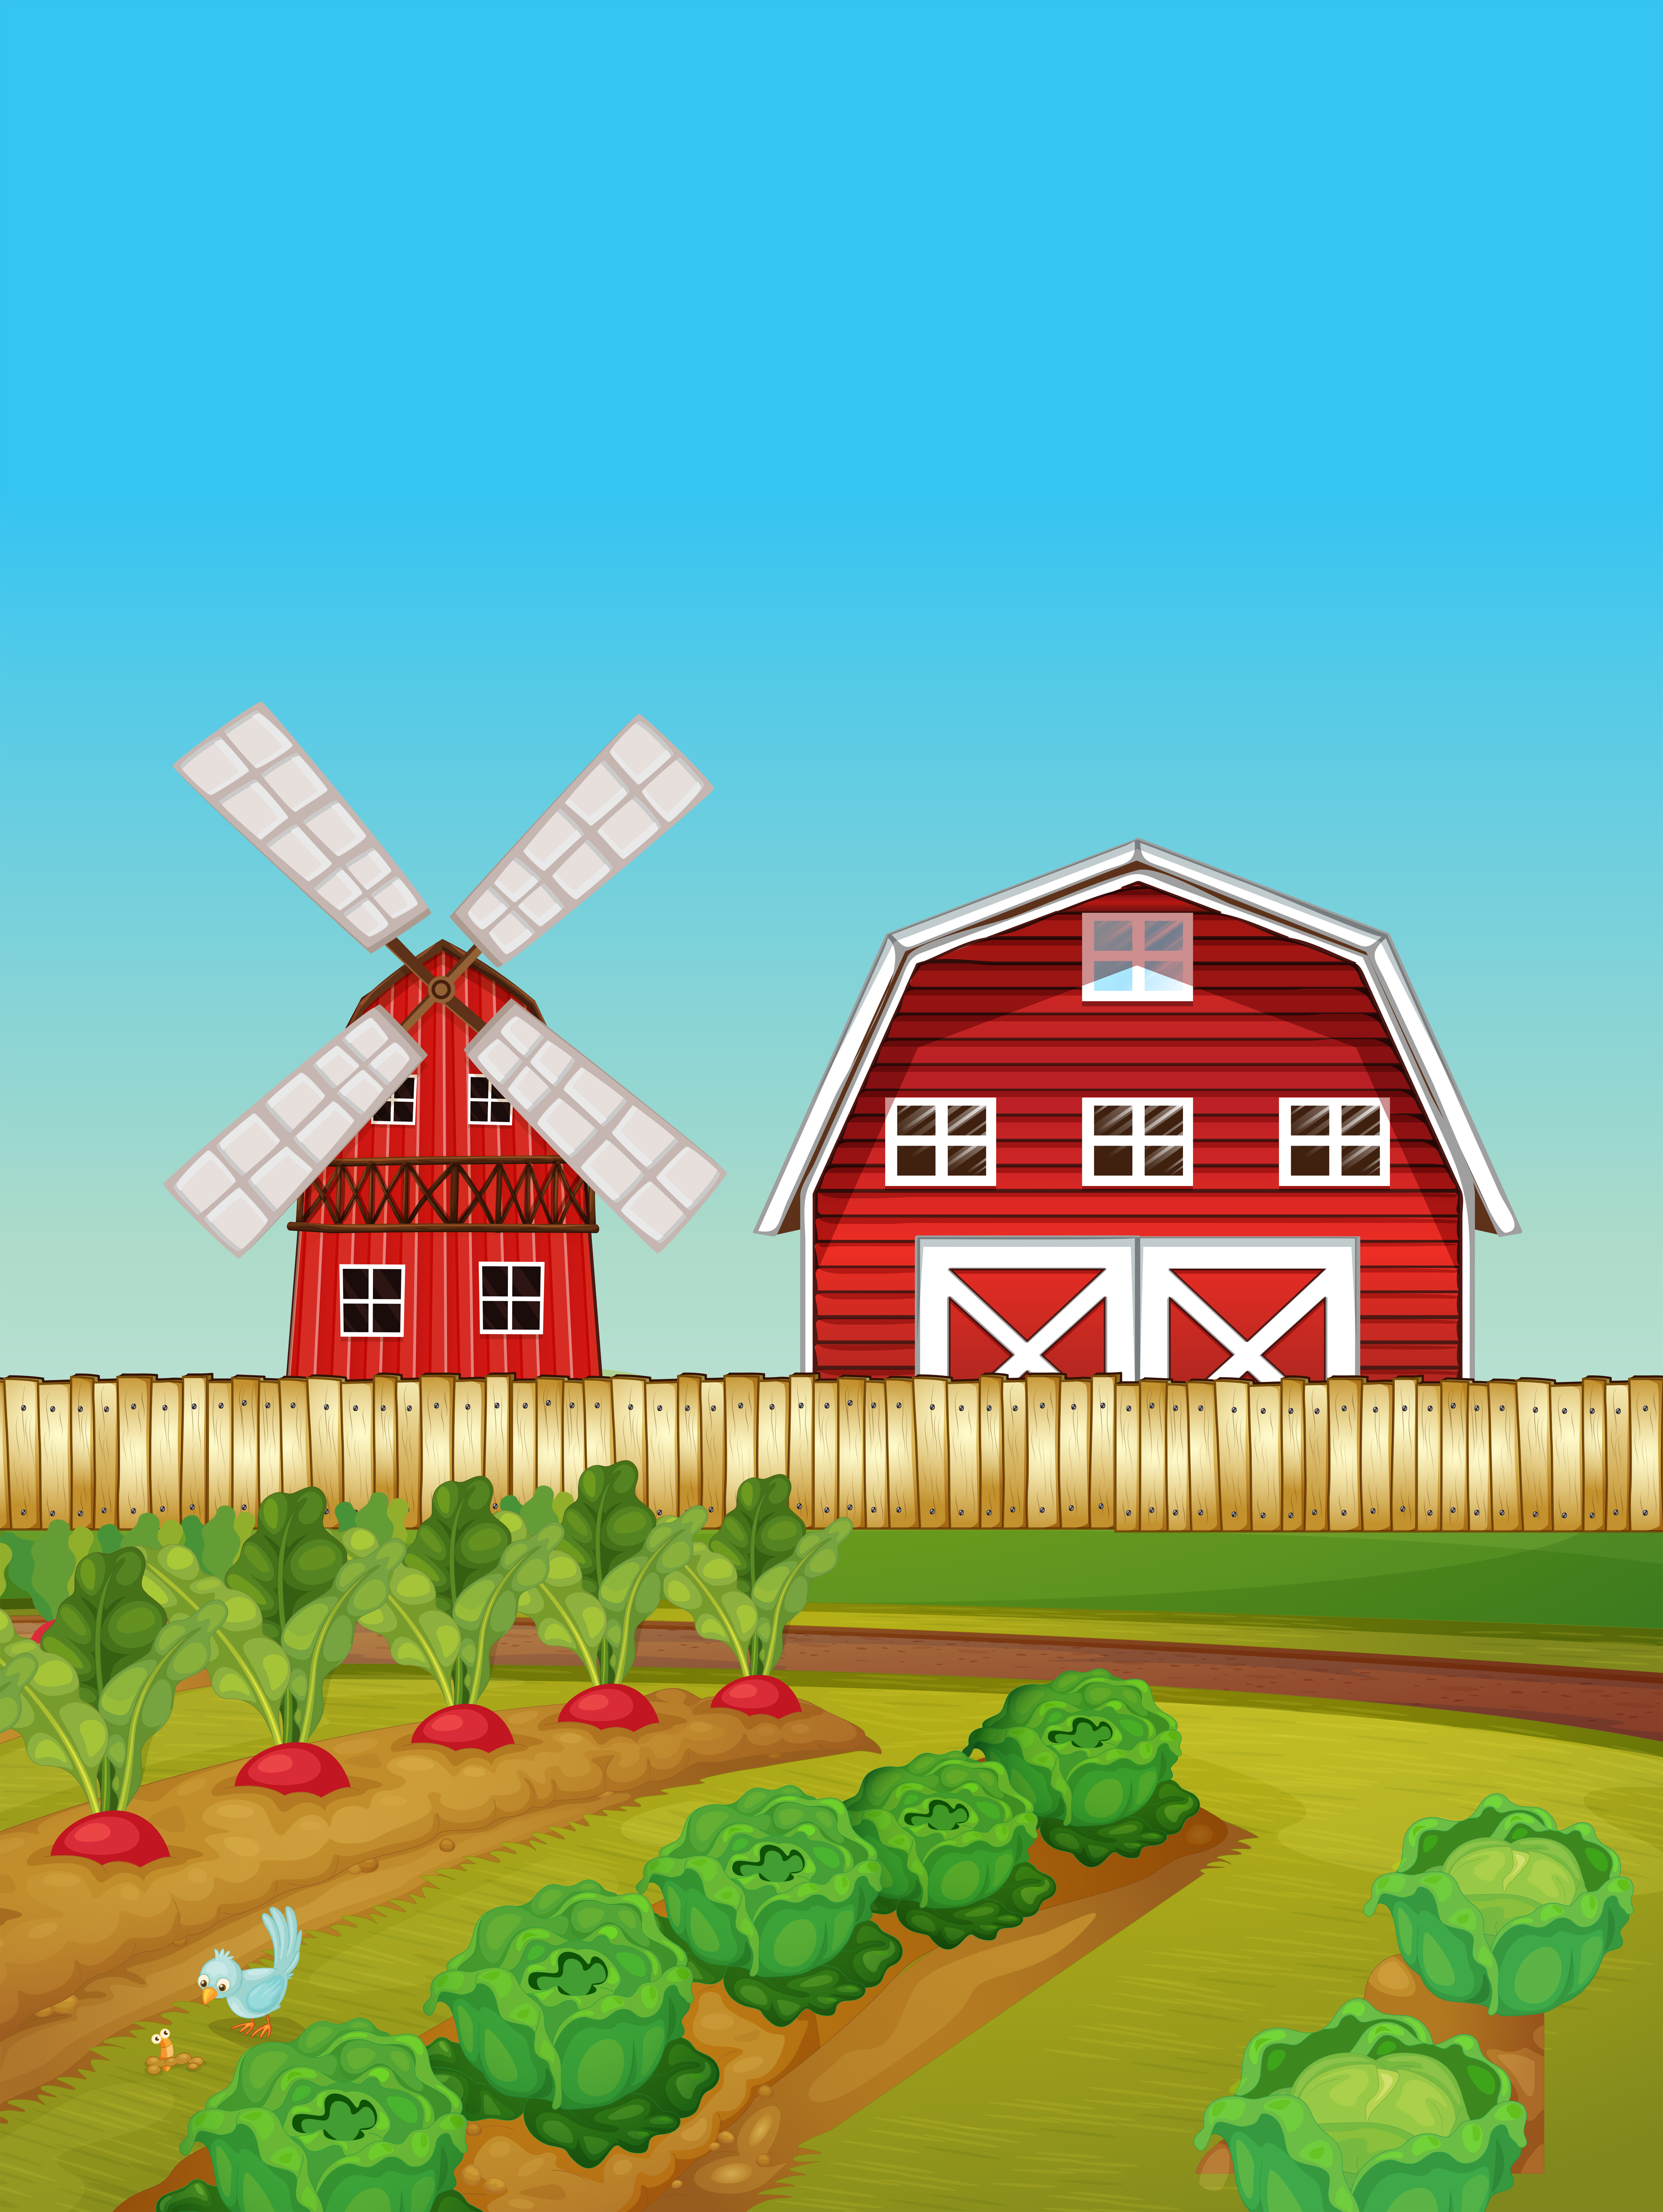 Farm scene with vegetable garden and barn - Download Free ...Farm Scene Clip Art Pictures